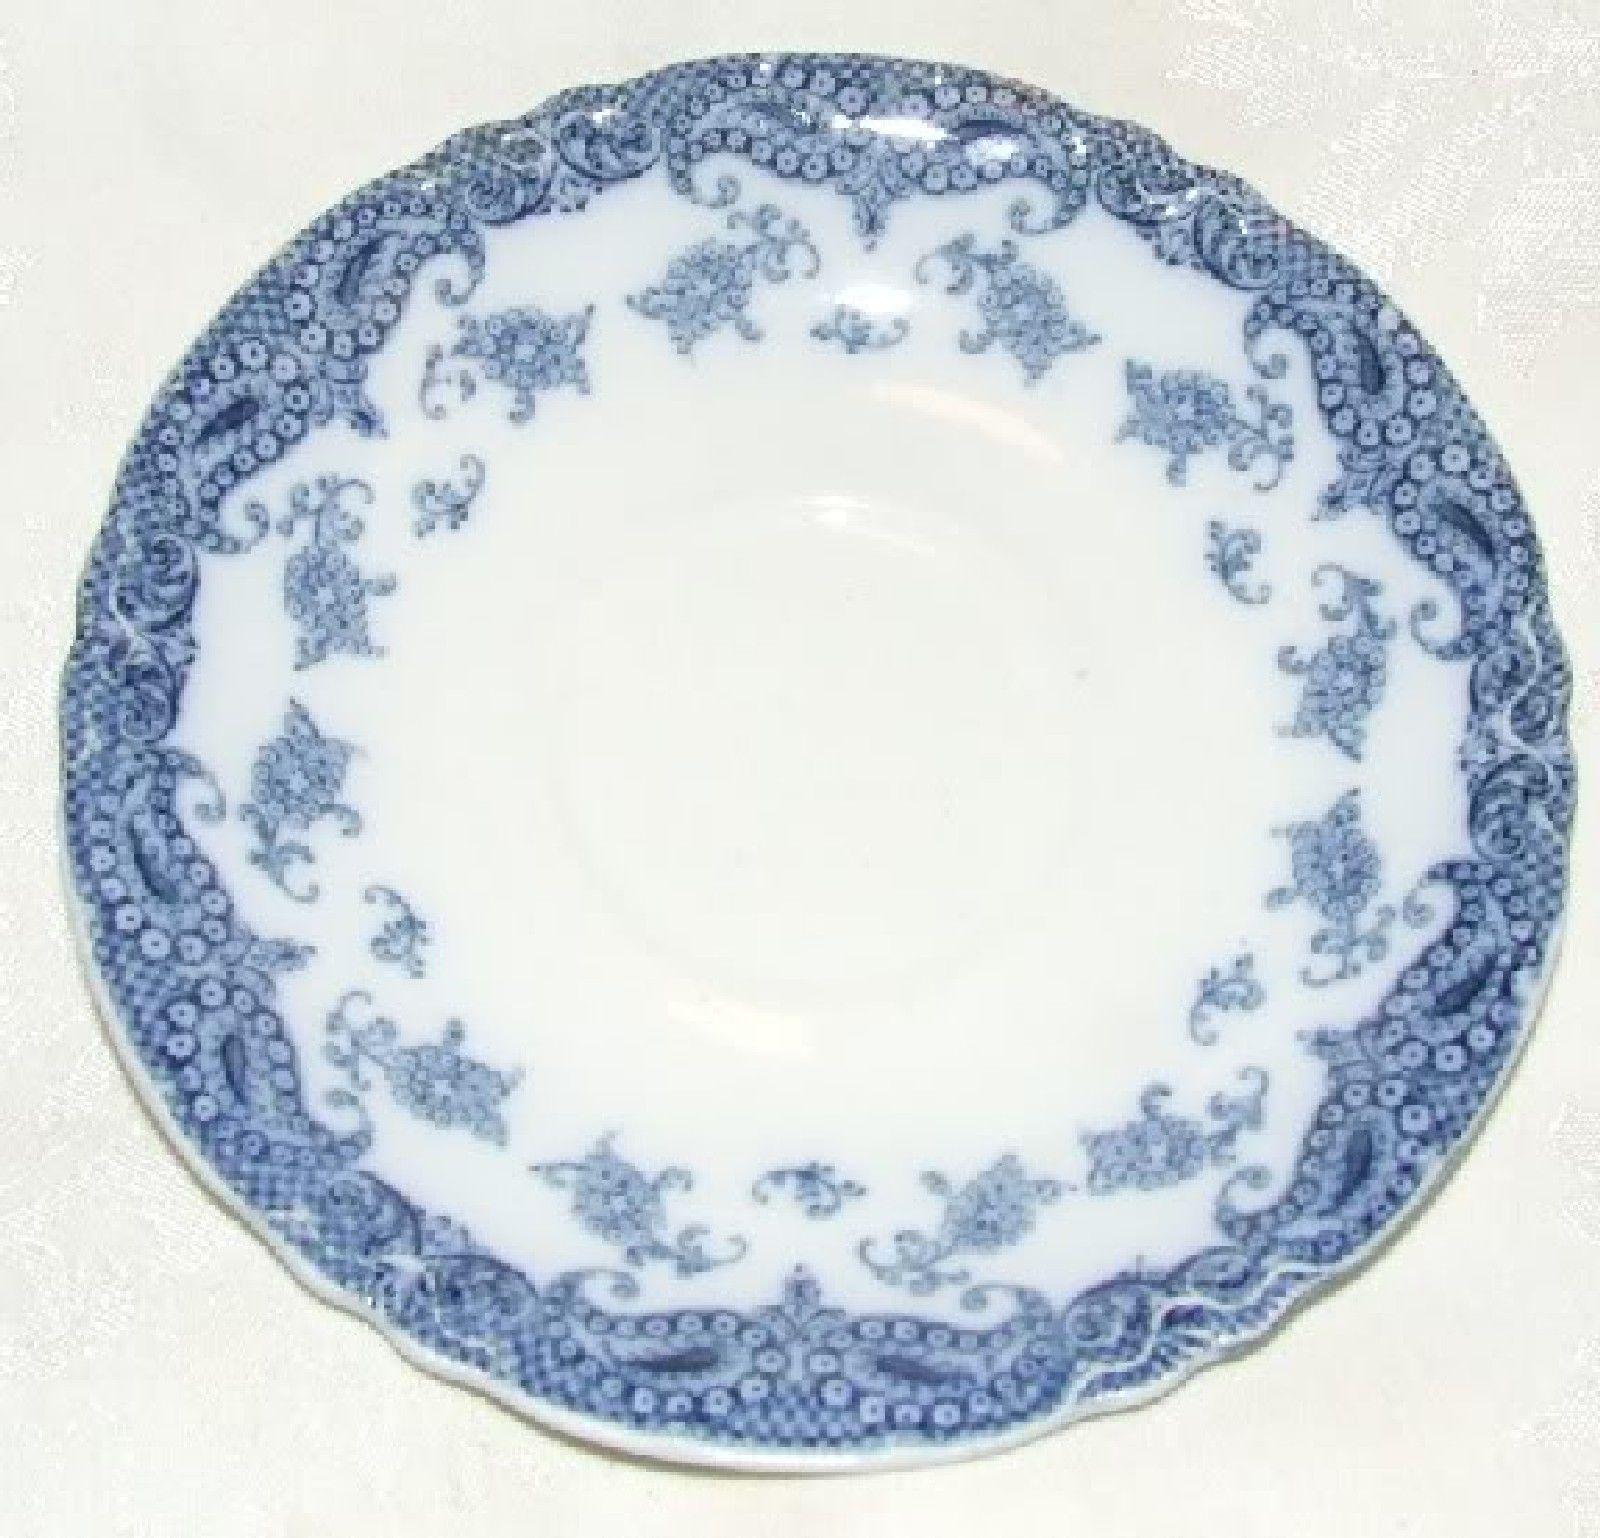 ANTIQUE 1907 MEAKIN OLYMPIA Flow Blue SAUCER Staffordshire 3 Available - $10.00